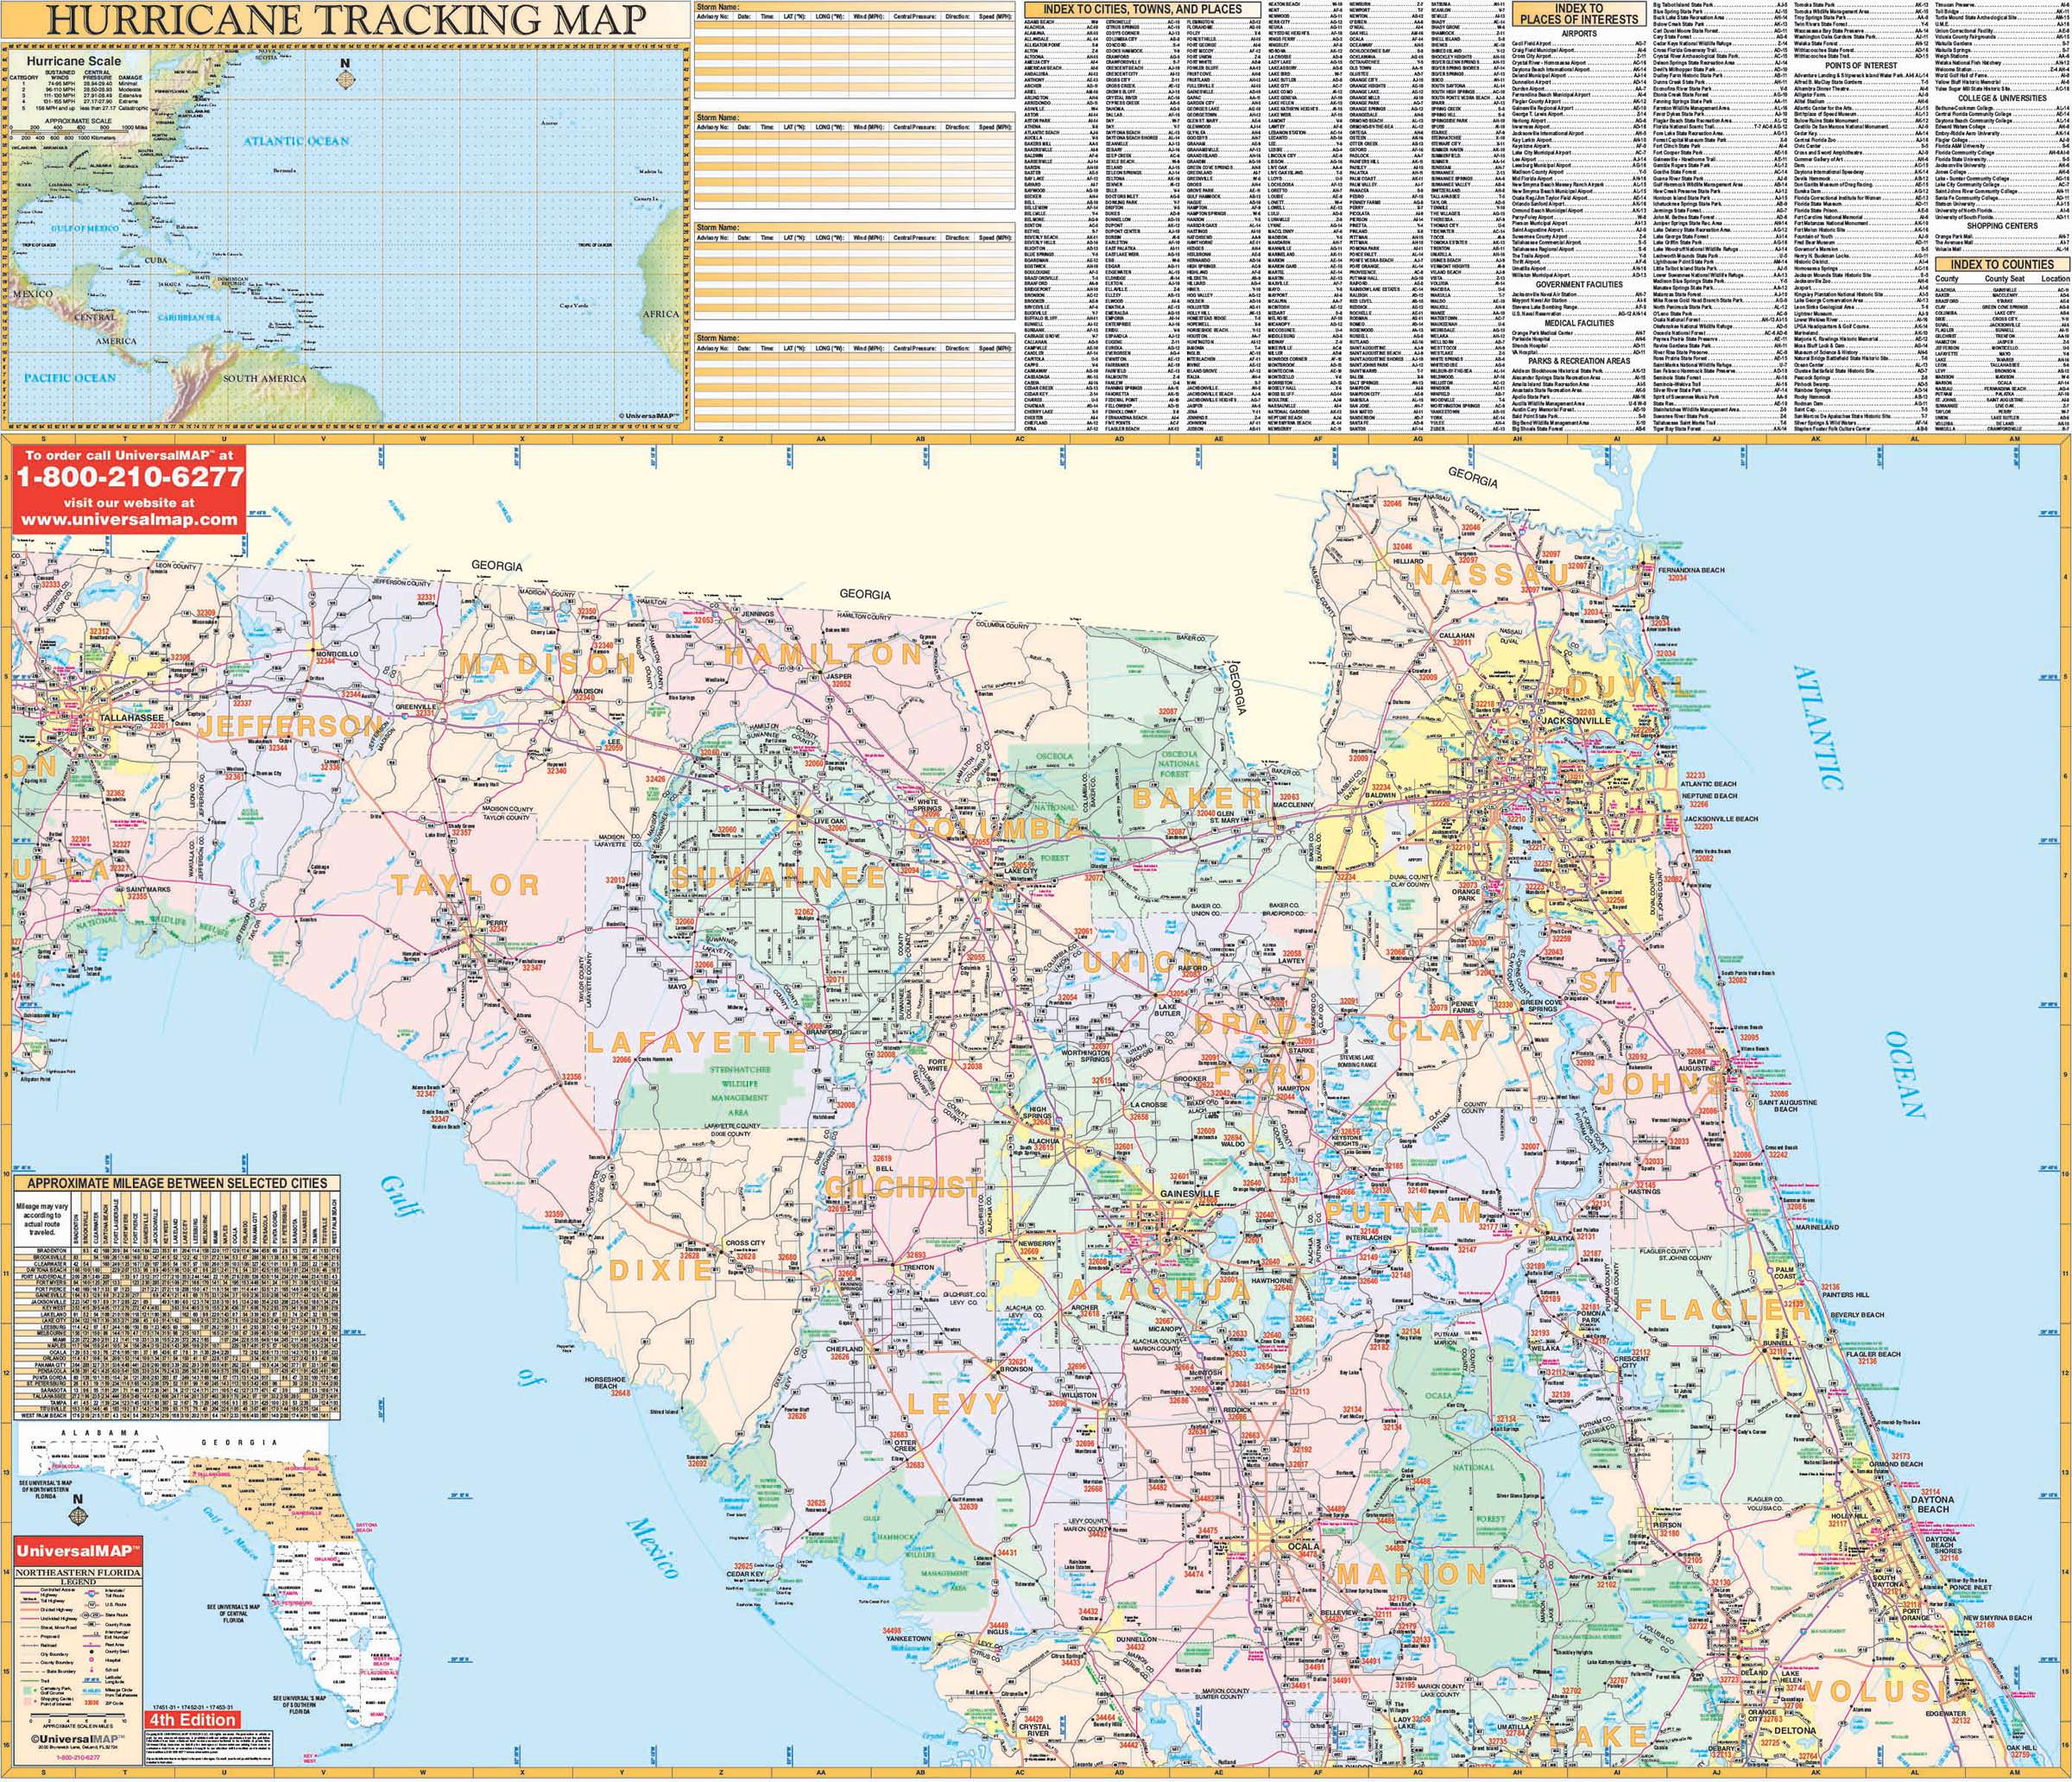 Map Of Northeast Florida Florida State Northeast Regional Wall Map – KAPPA MAP GROUP